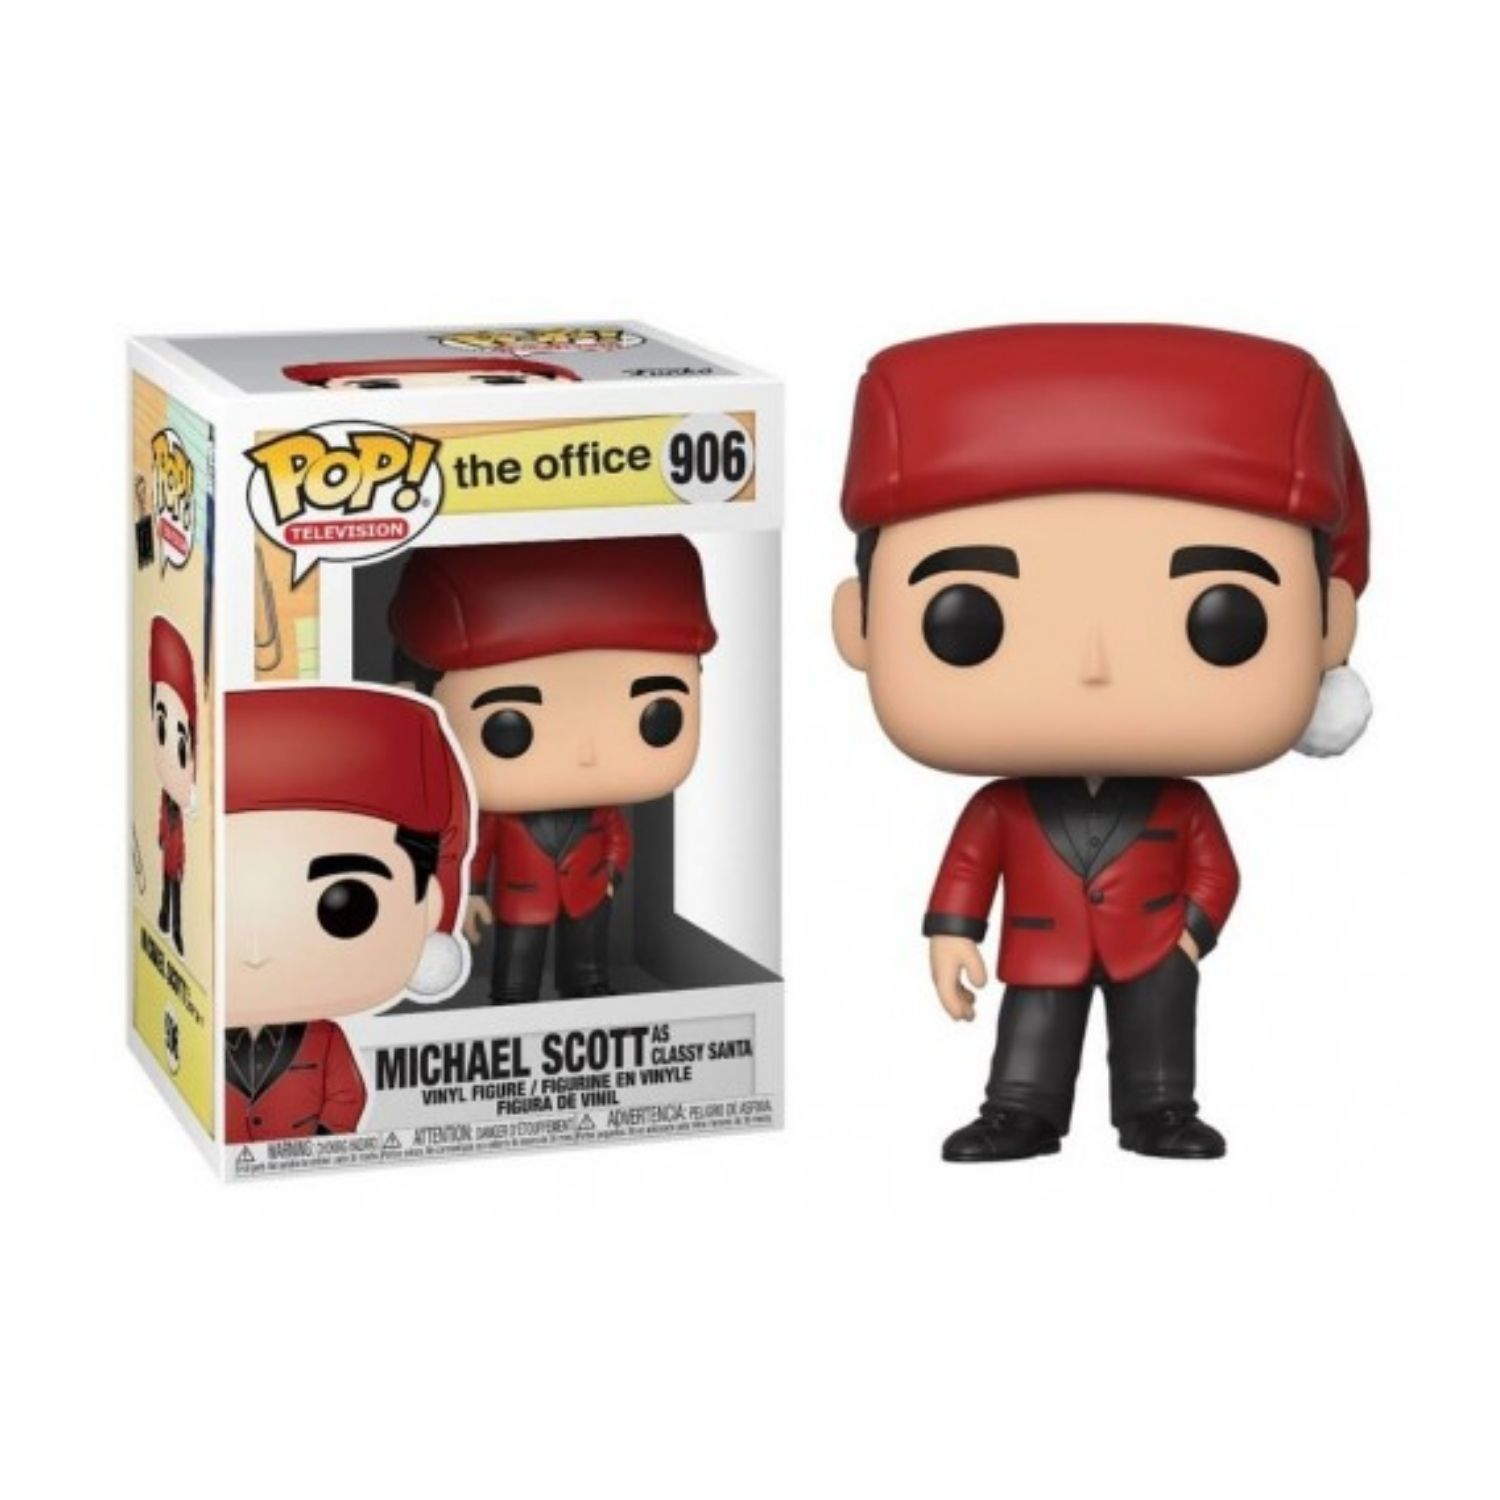 Funko Pop! Michael Scott As Classy Santa - The Office #906 - Game Land Brinquedos